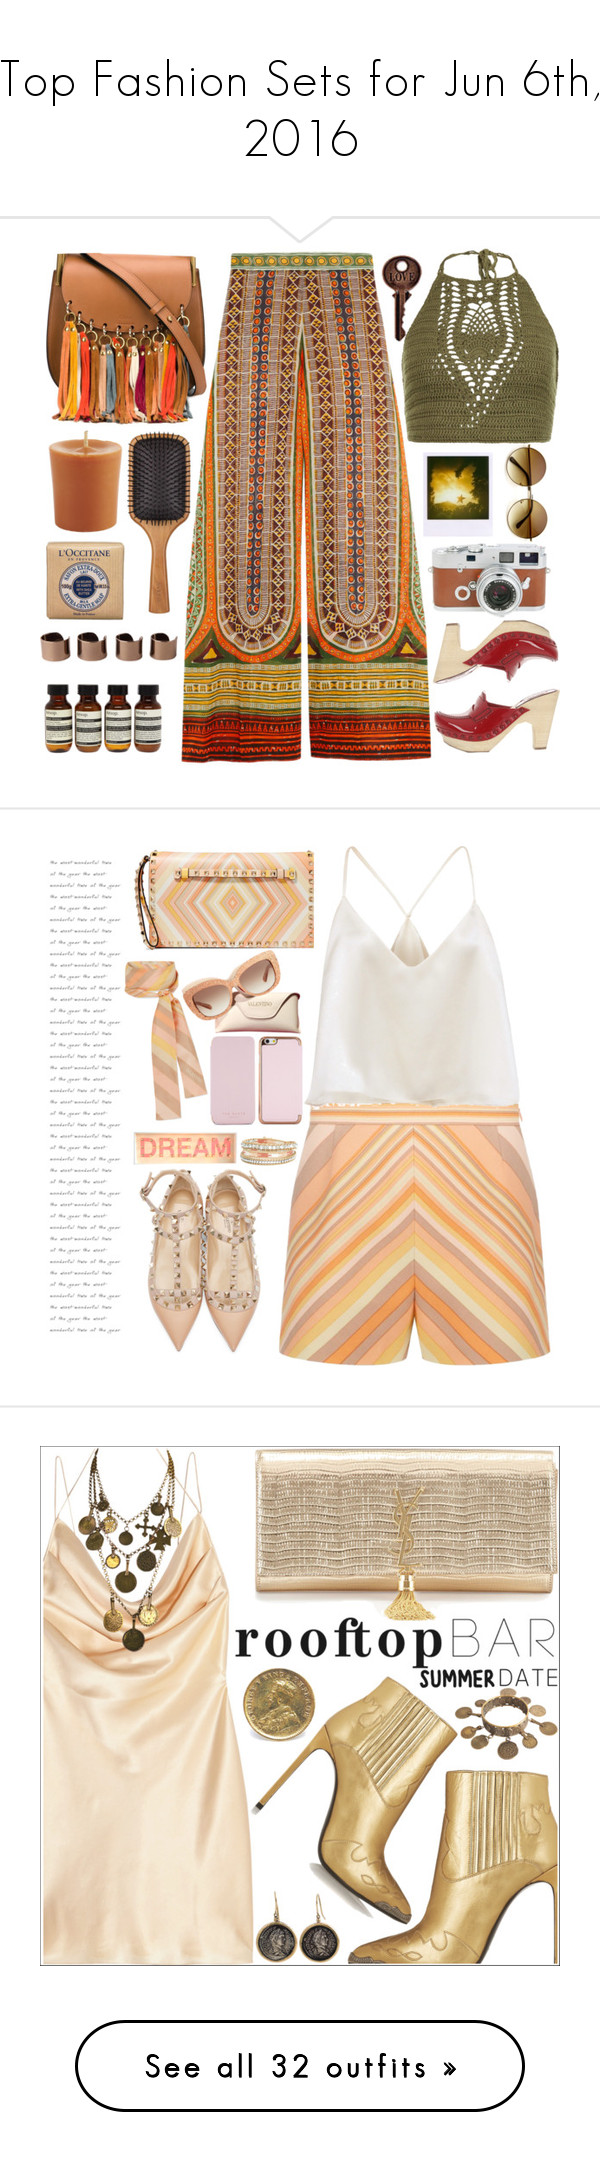 """""""Top Fashion Sets for Jun 6th, 2016"""" by polyvore ❤ liked on Polyvore featuring Valentino, Miu Miu, Chloé, New Look, Aveda, Pier 1 Imports, L'Occitane, Aesop, Maison Margiela and Leica"""